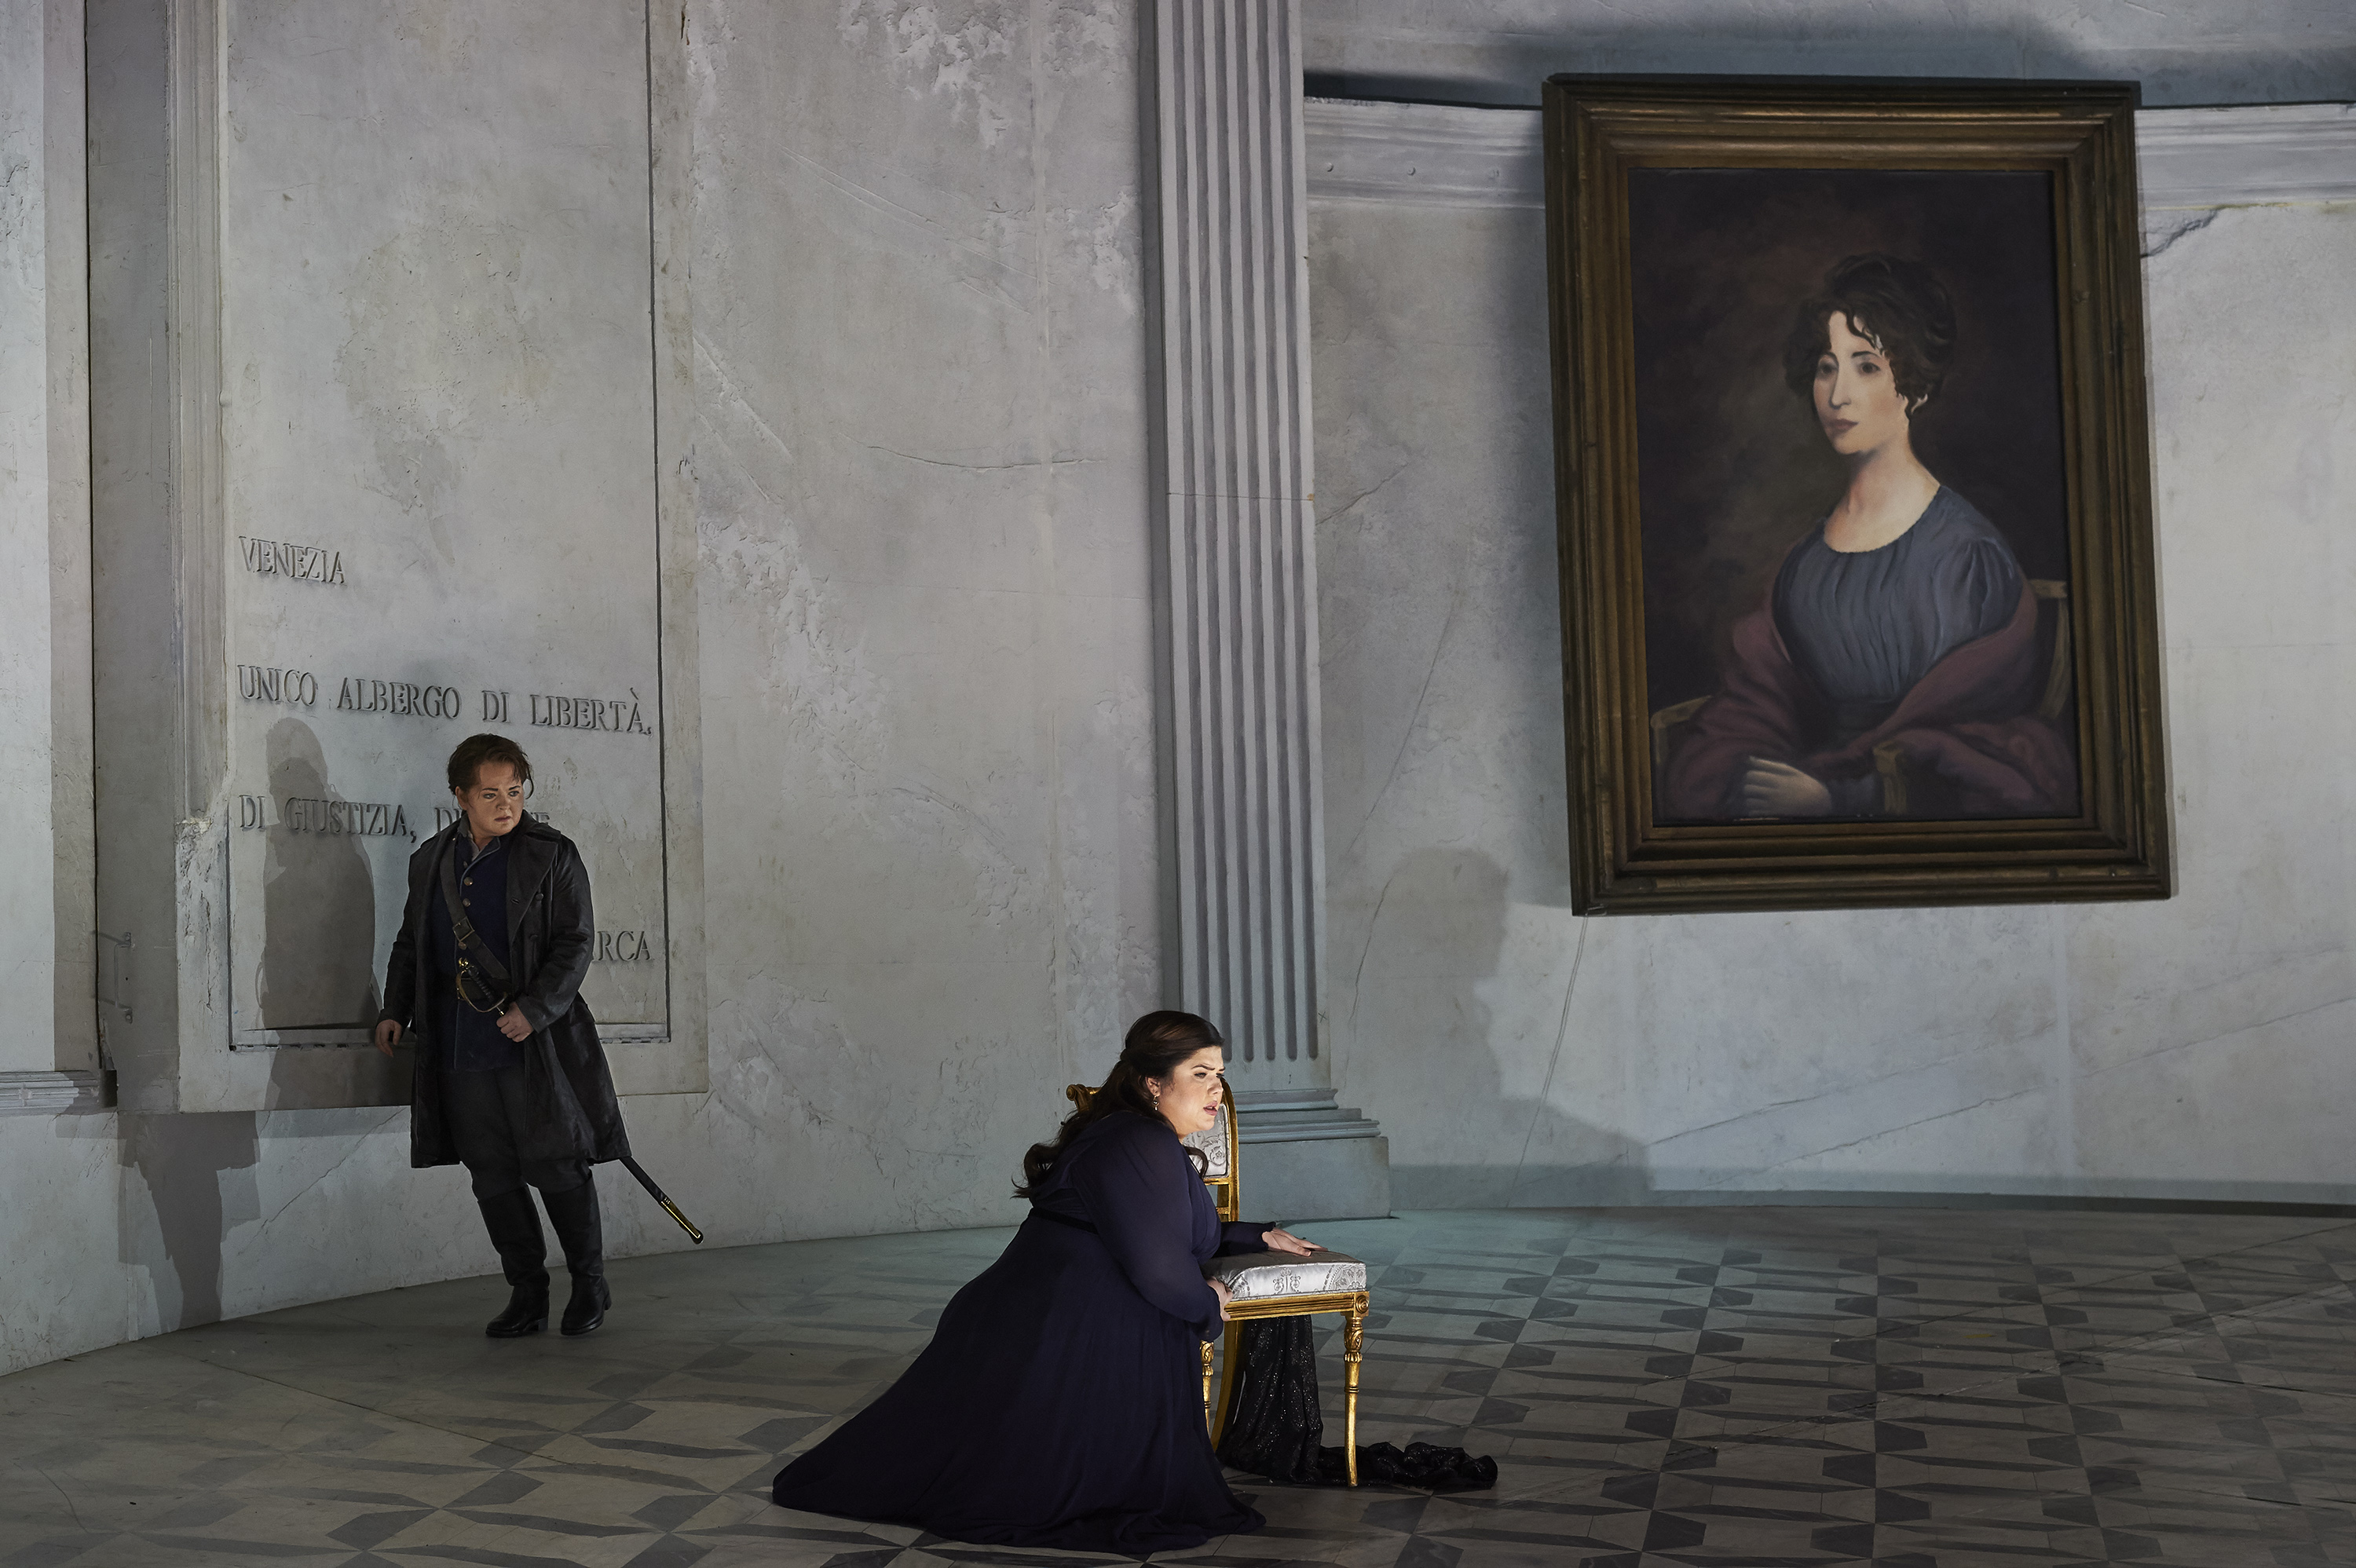 Finding Inspiration in Opera